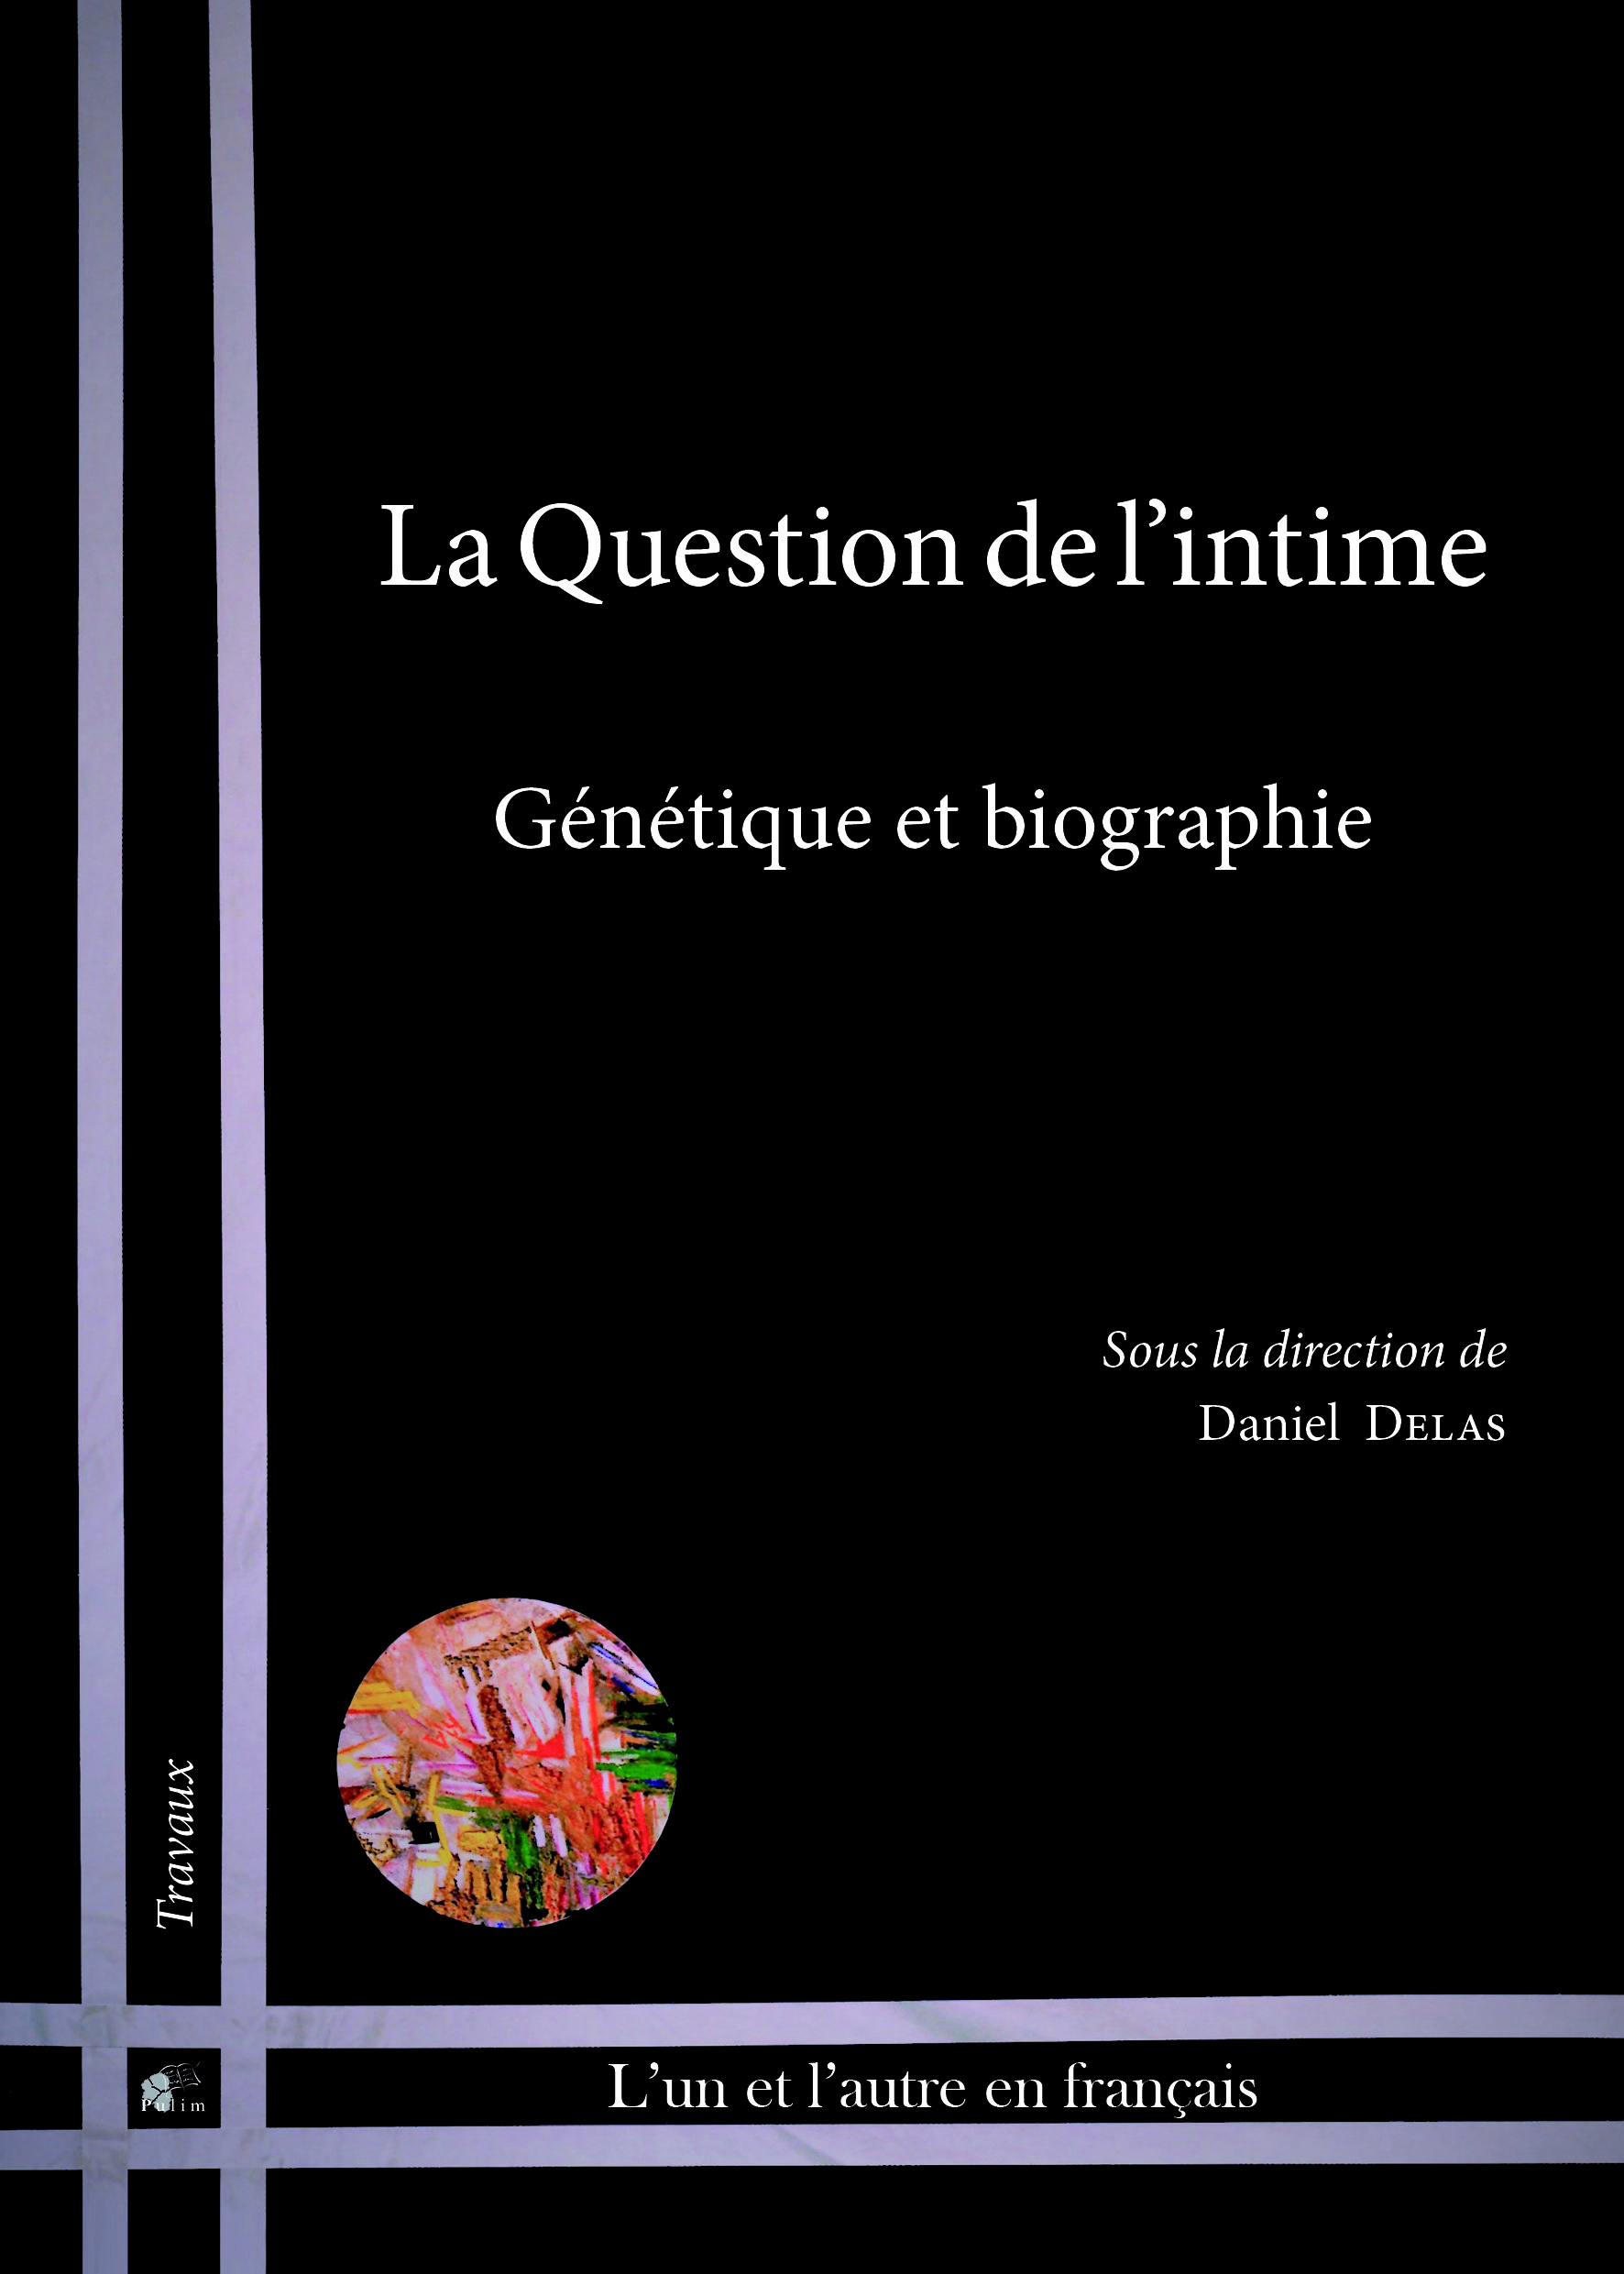 D. Delas (dir.), La question de l'intime. Génétique et biographie